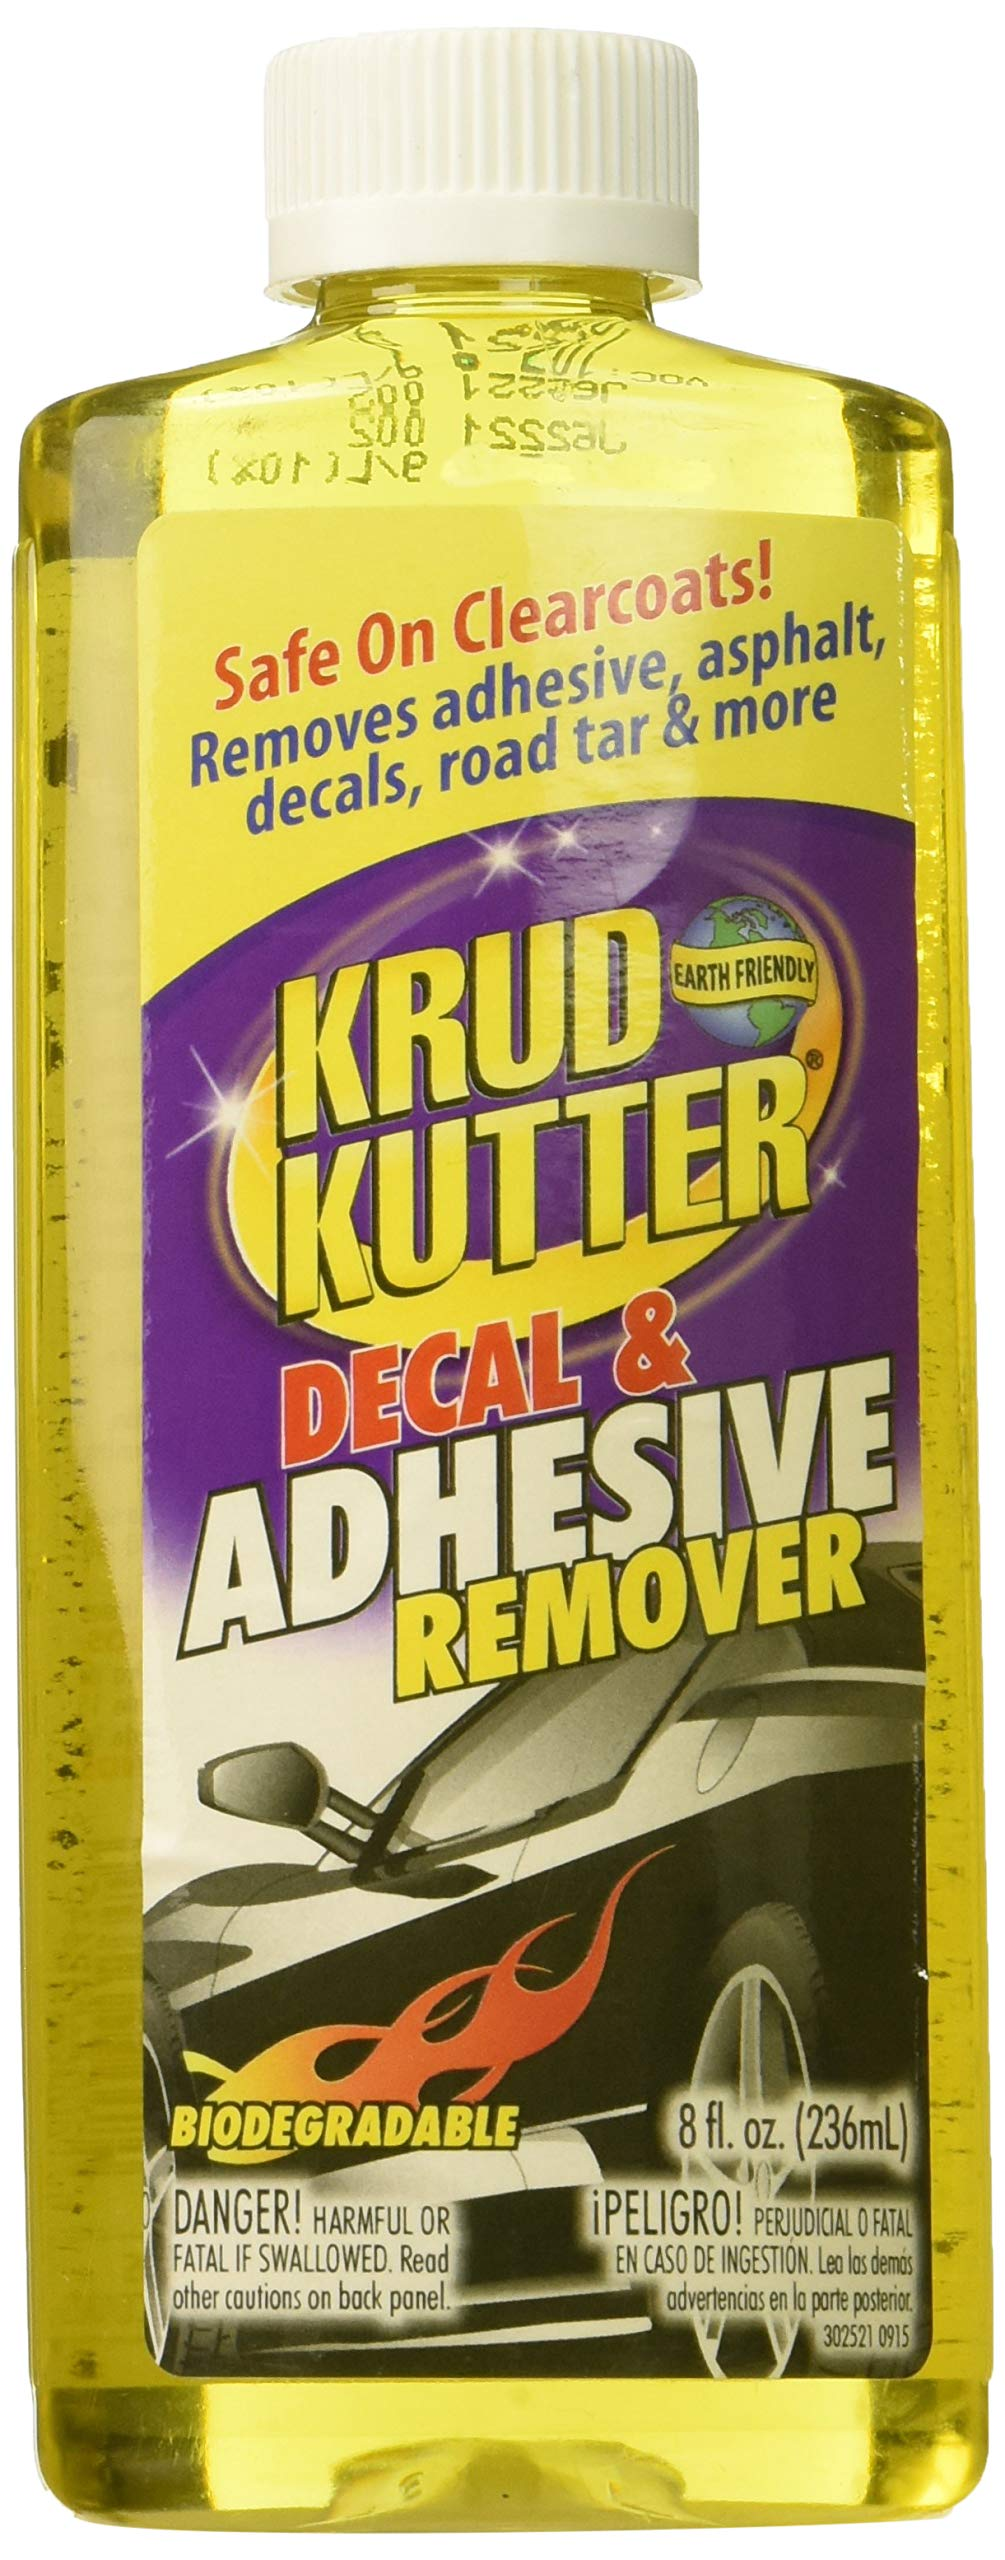 RUST-OLEUM PU086 Decal/Adhesive Remover, 8 oz